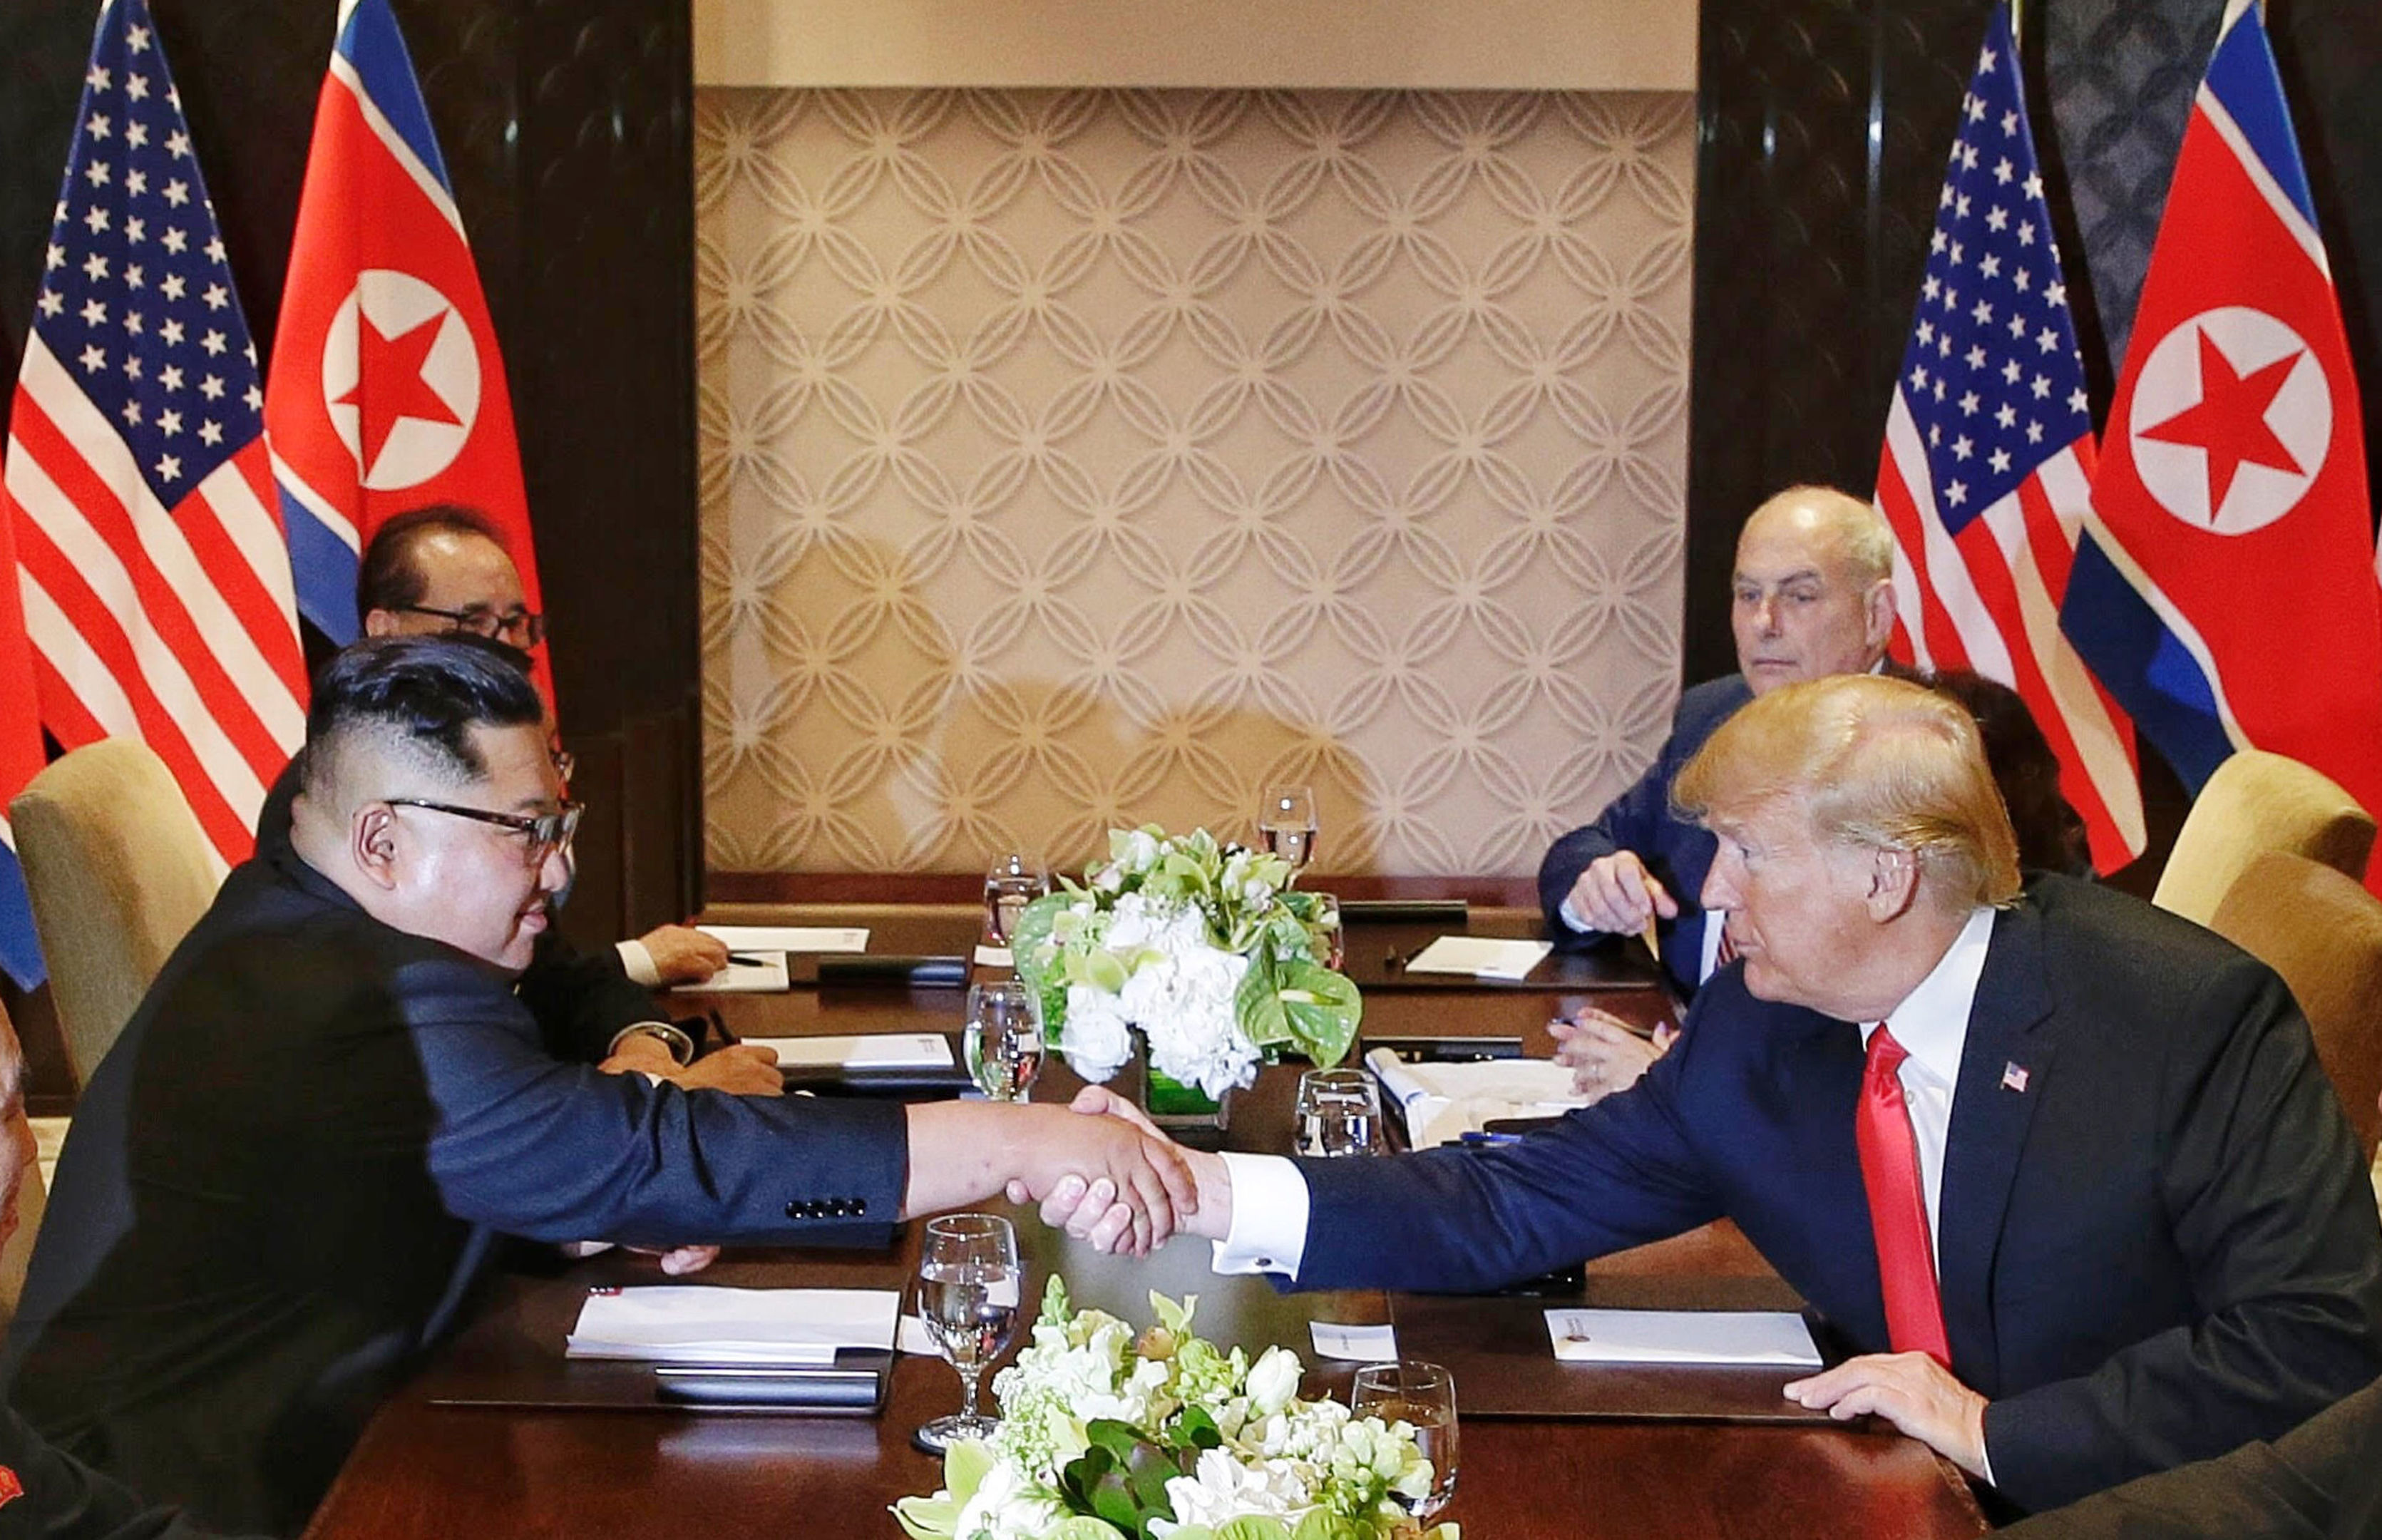 U.S. President Donald Trump shakes hands with North Korean leader Kim Jong Un during their meeting (Kevin Lim/The Straits Times via AP)